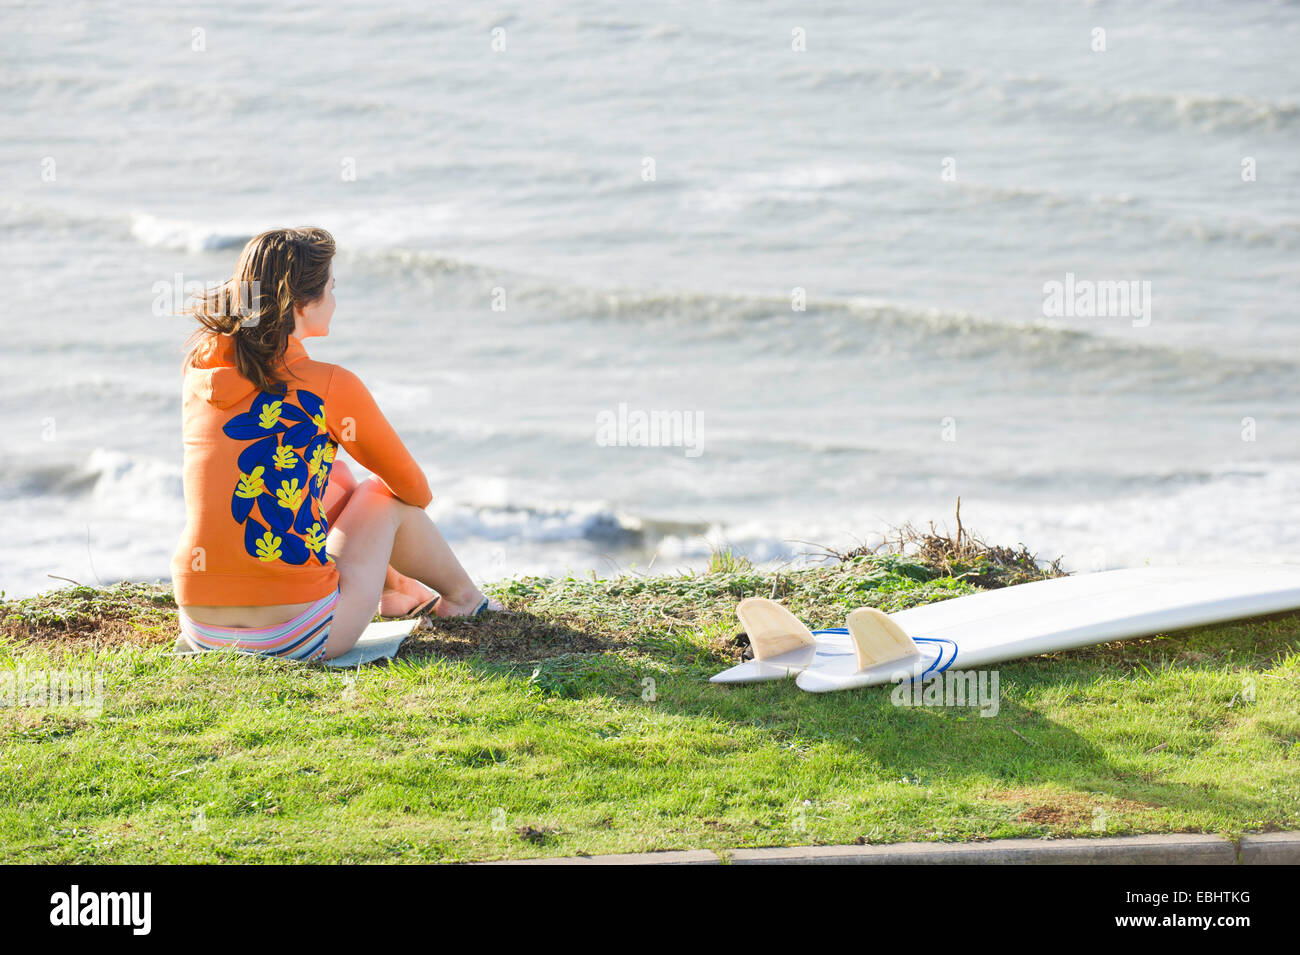 Girl surfer looking at waves - Stock Image